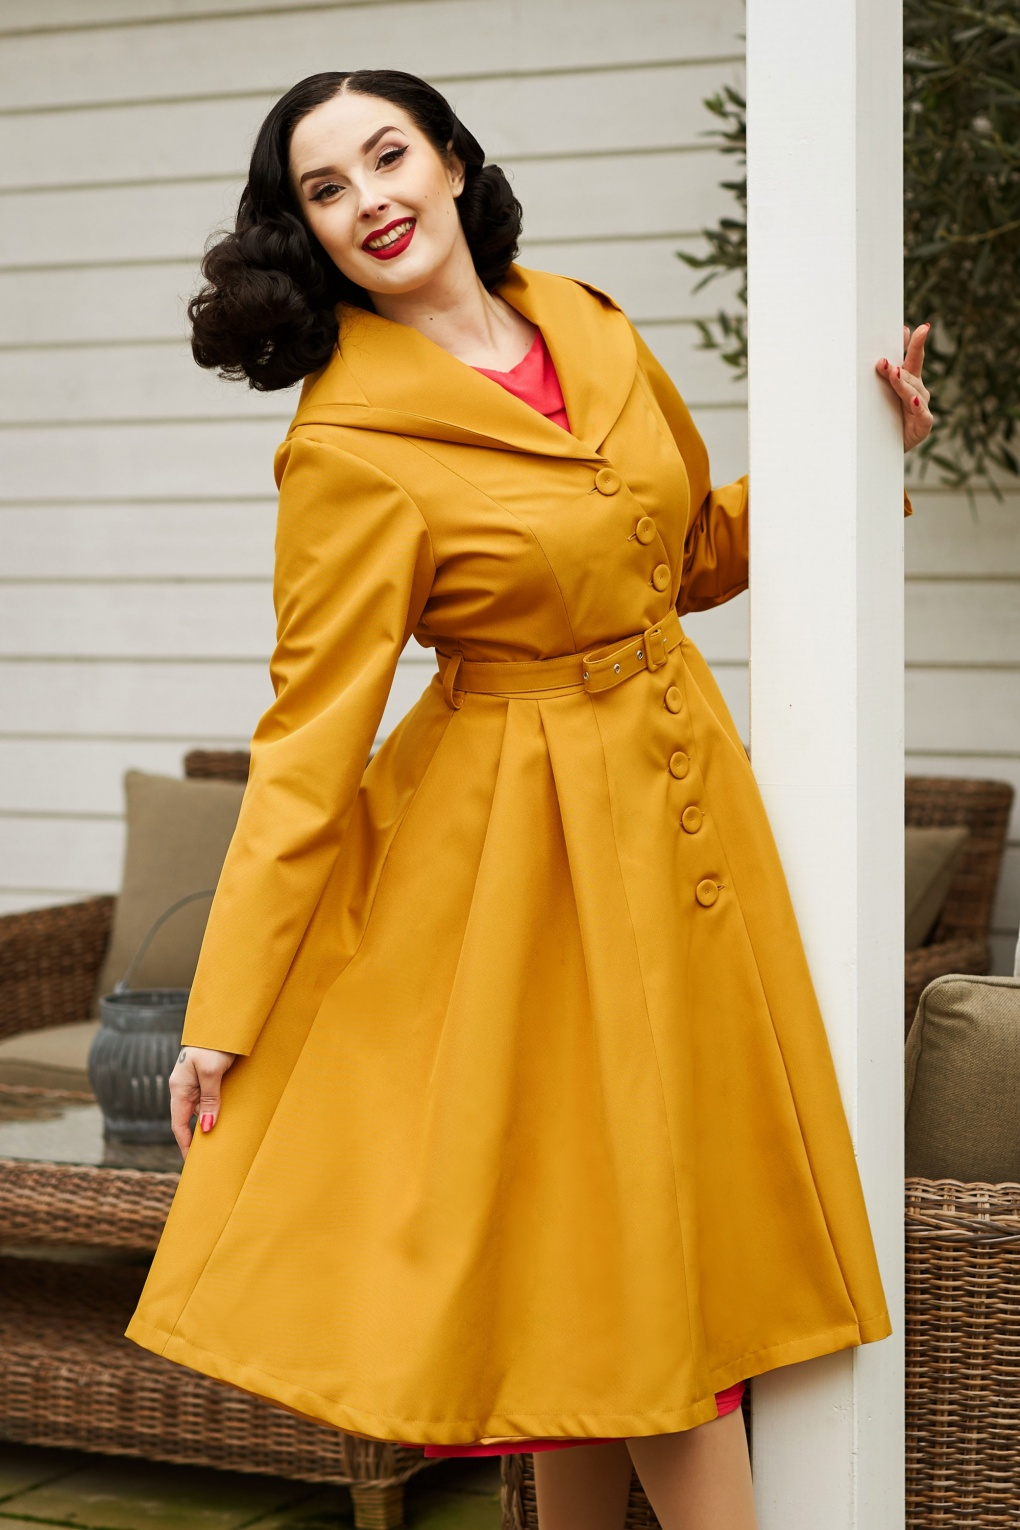 Vintage Coats & Jackets | Retro Coats and Jackets 50s Lorin Sun Swing Trench Coat in Mustard £148.48 AT vintagedancer.com